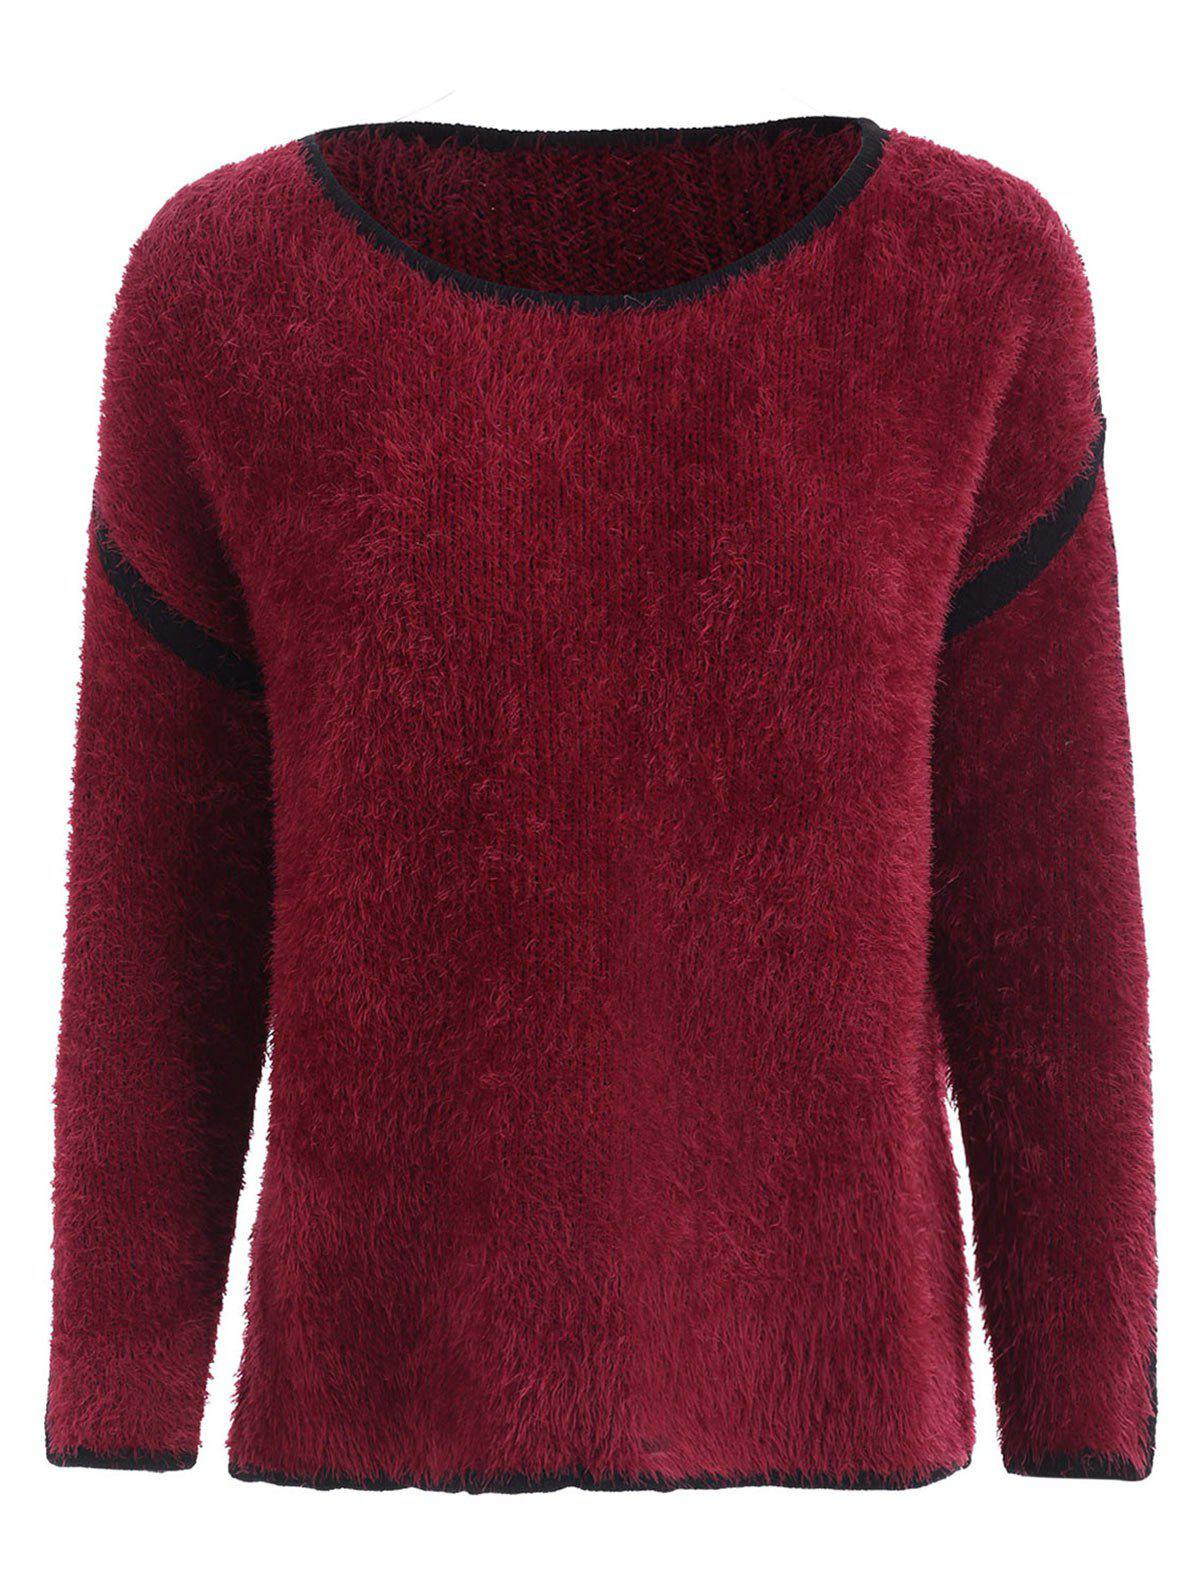 Affordable Drop Shoulder Fuzzy Pullover Sweater